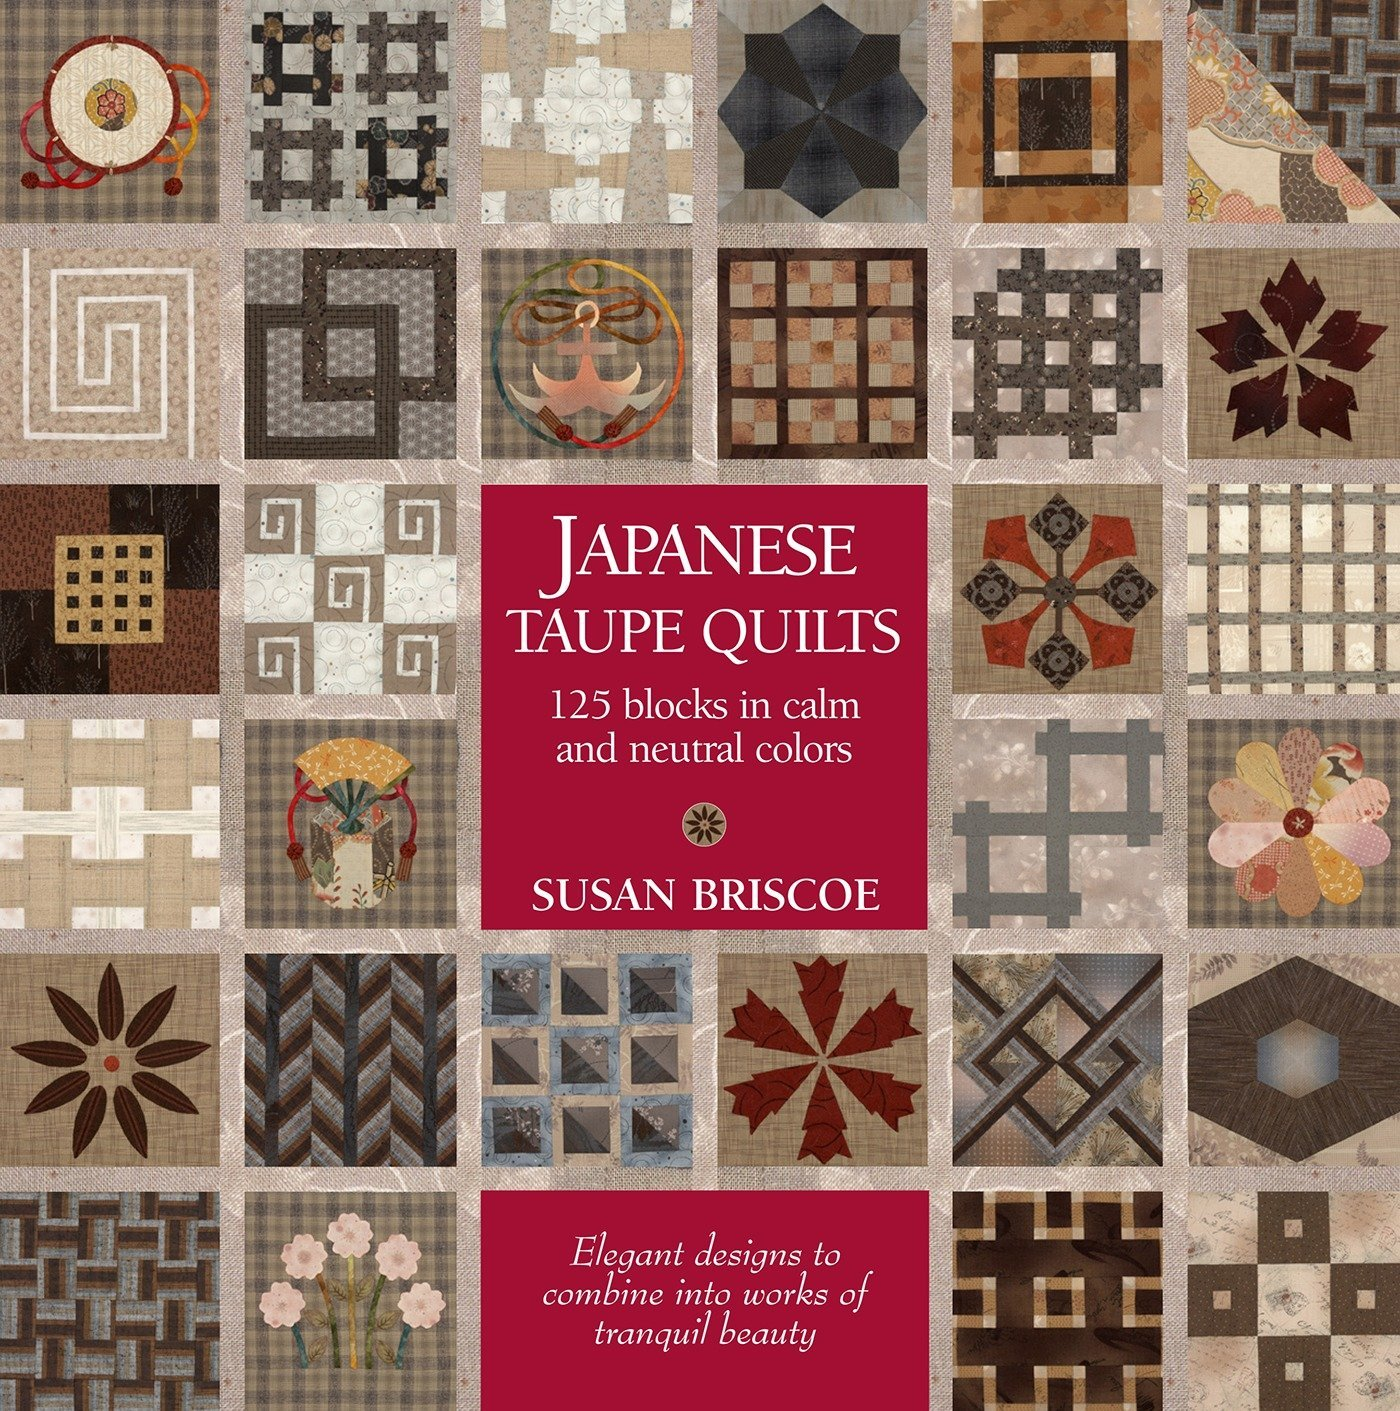 Japanese Taupe Quilts 125 Blocks in Calm and Neutral Colors Susan